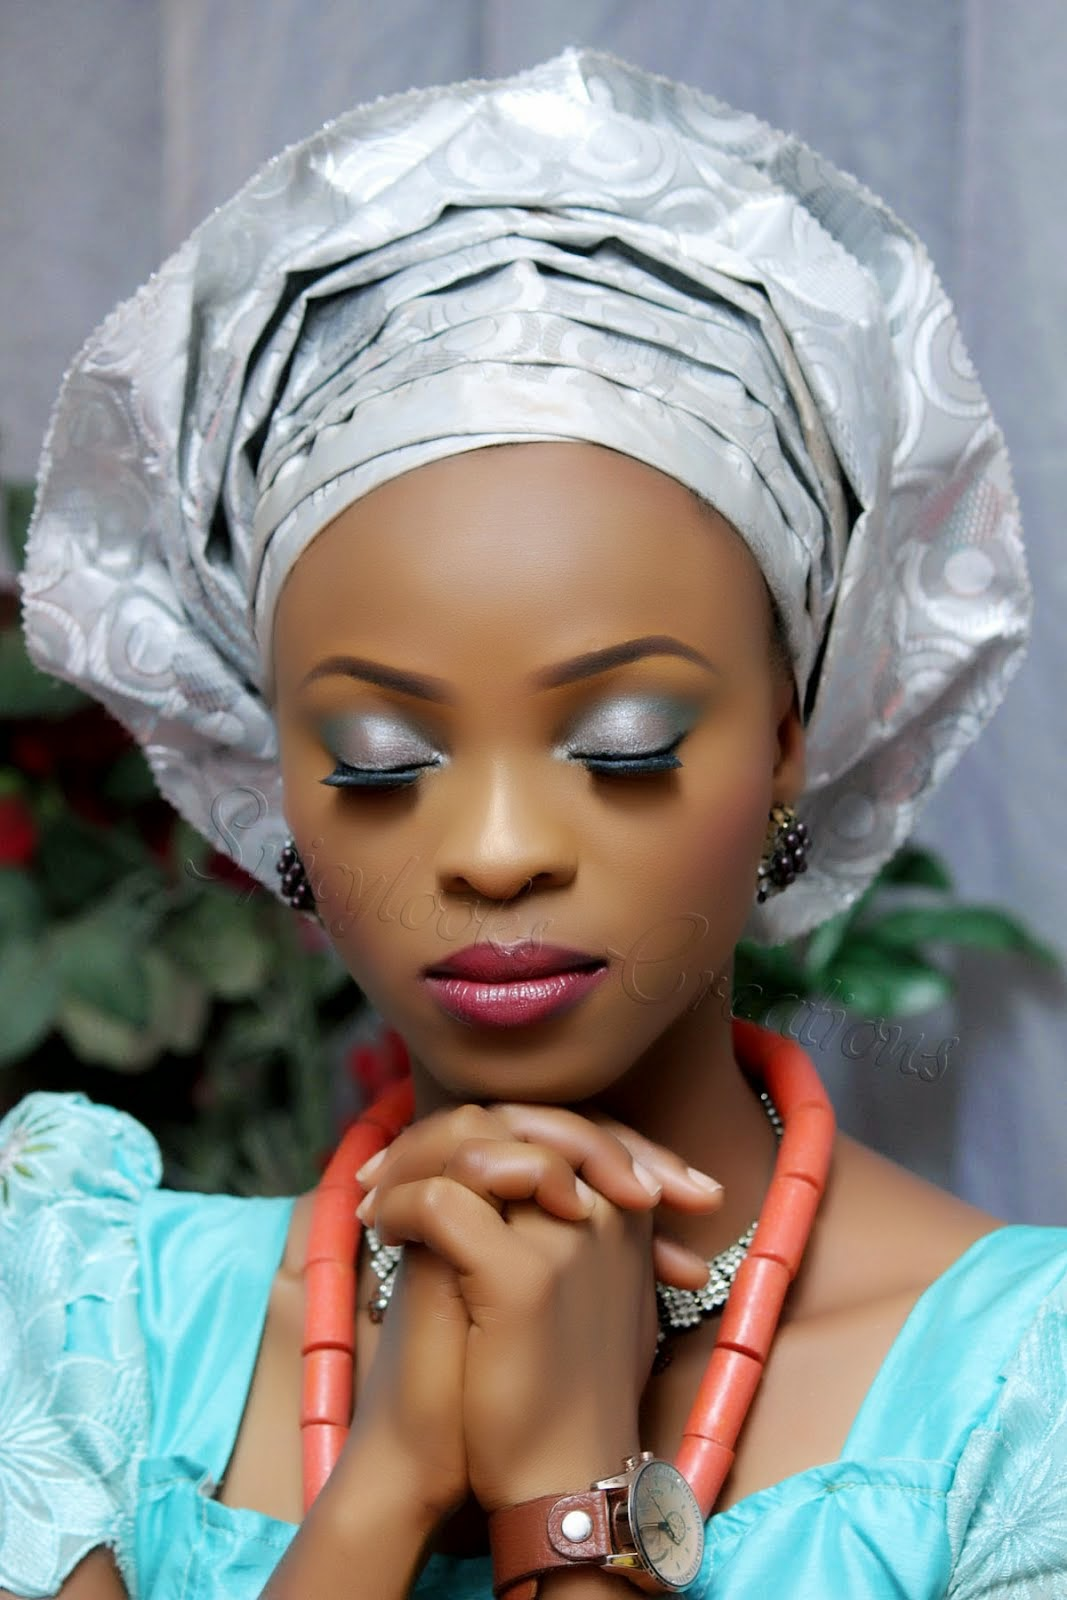 Make Up by Spicy Looks Creations